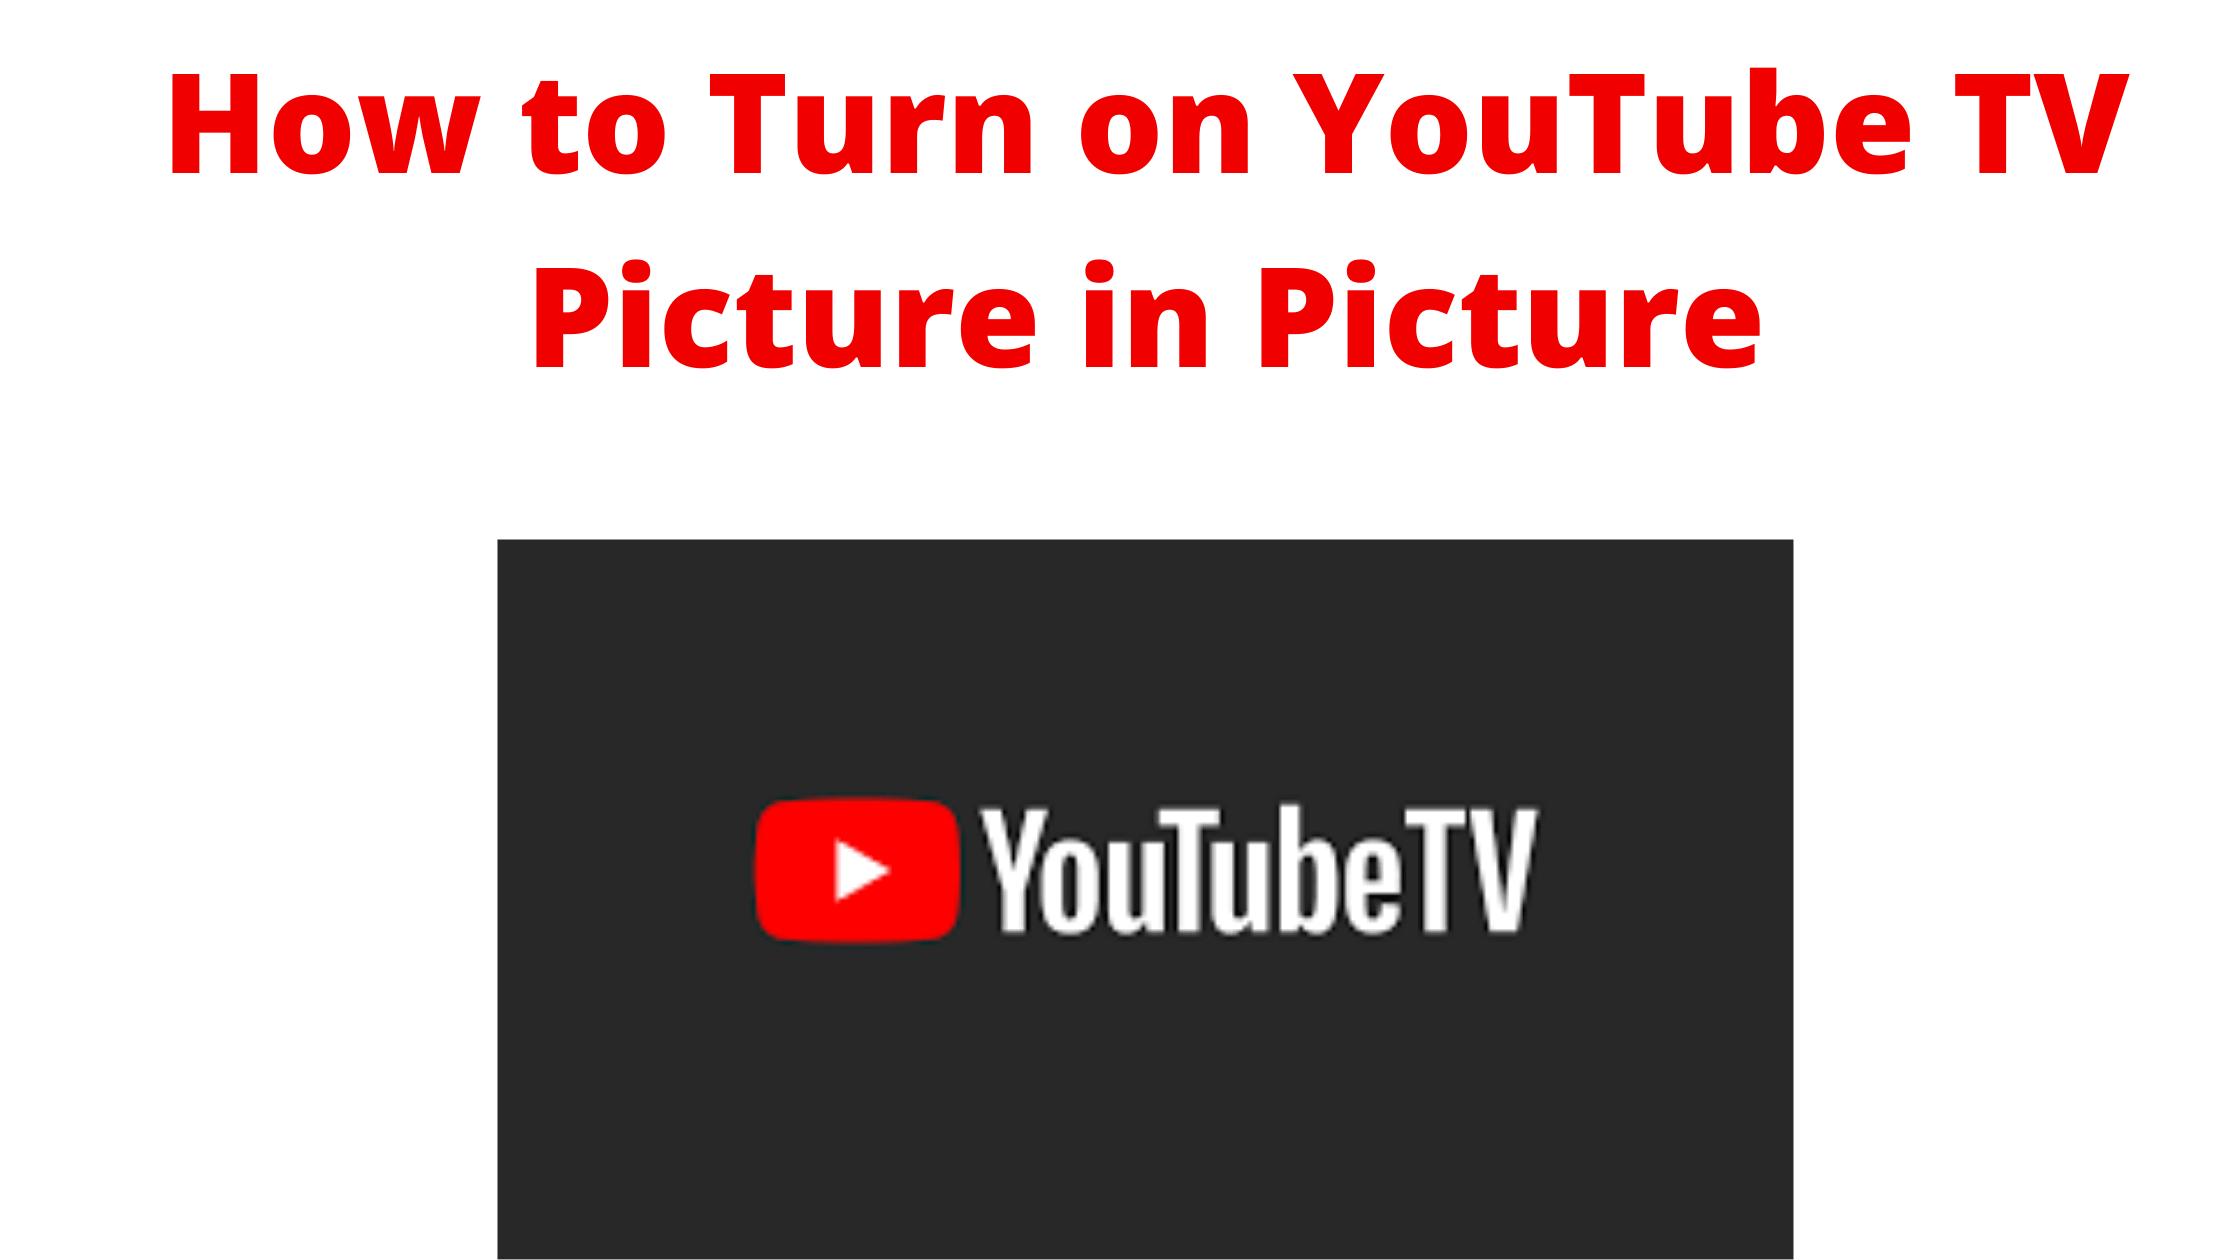 YouTube TV Picture in Picture